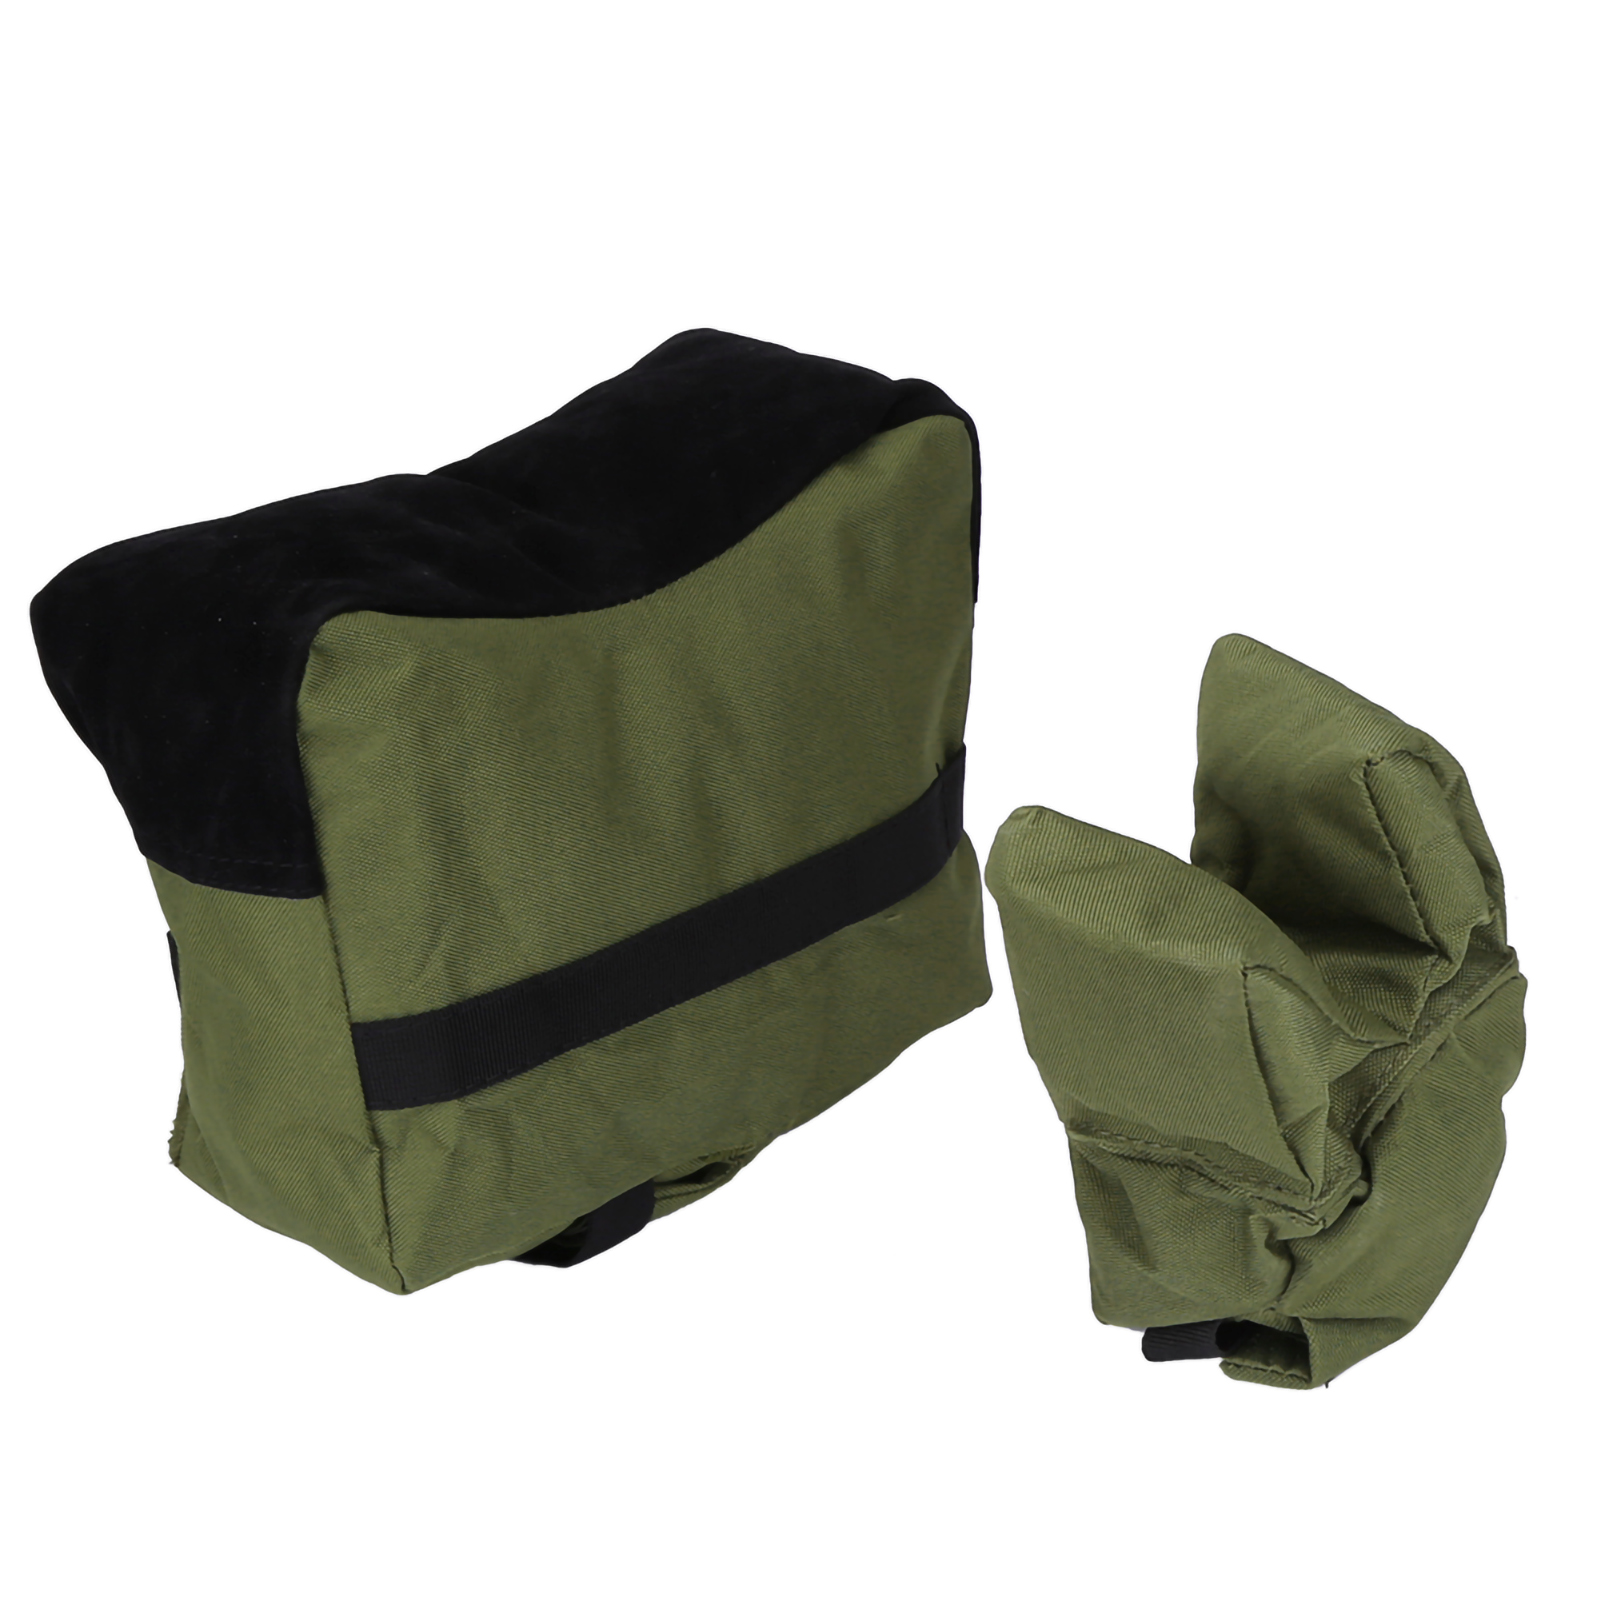 Portable Shooting Range Rifle Rest Front Rear Support Bag